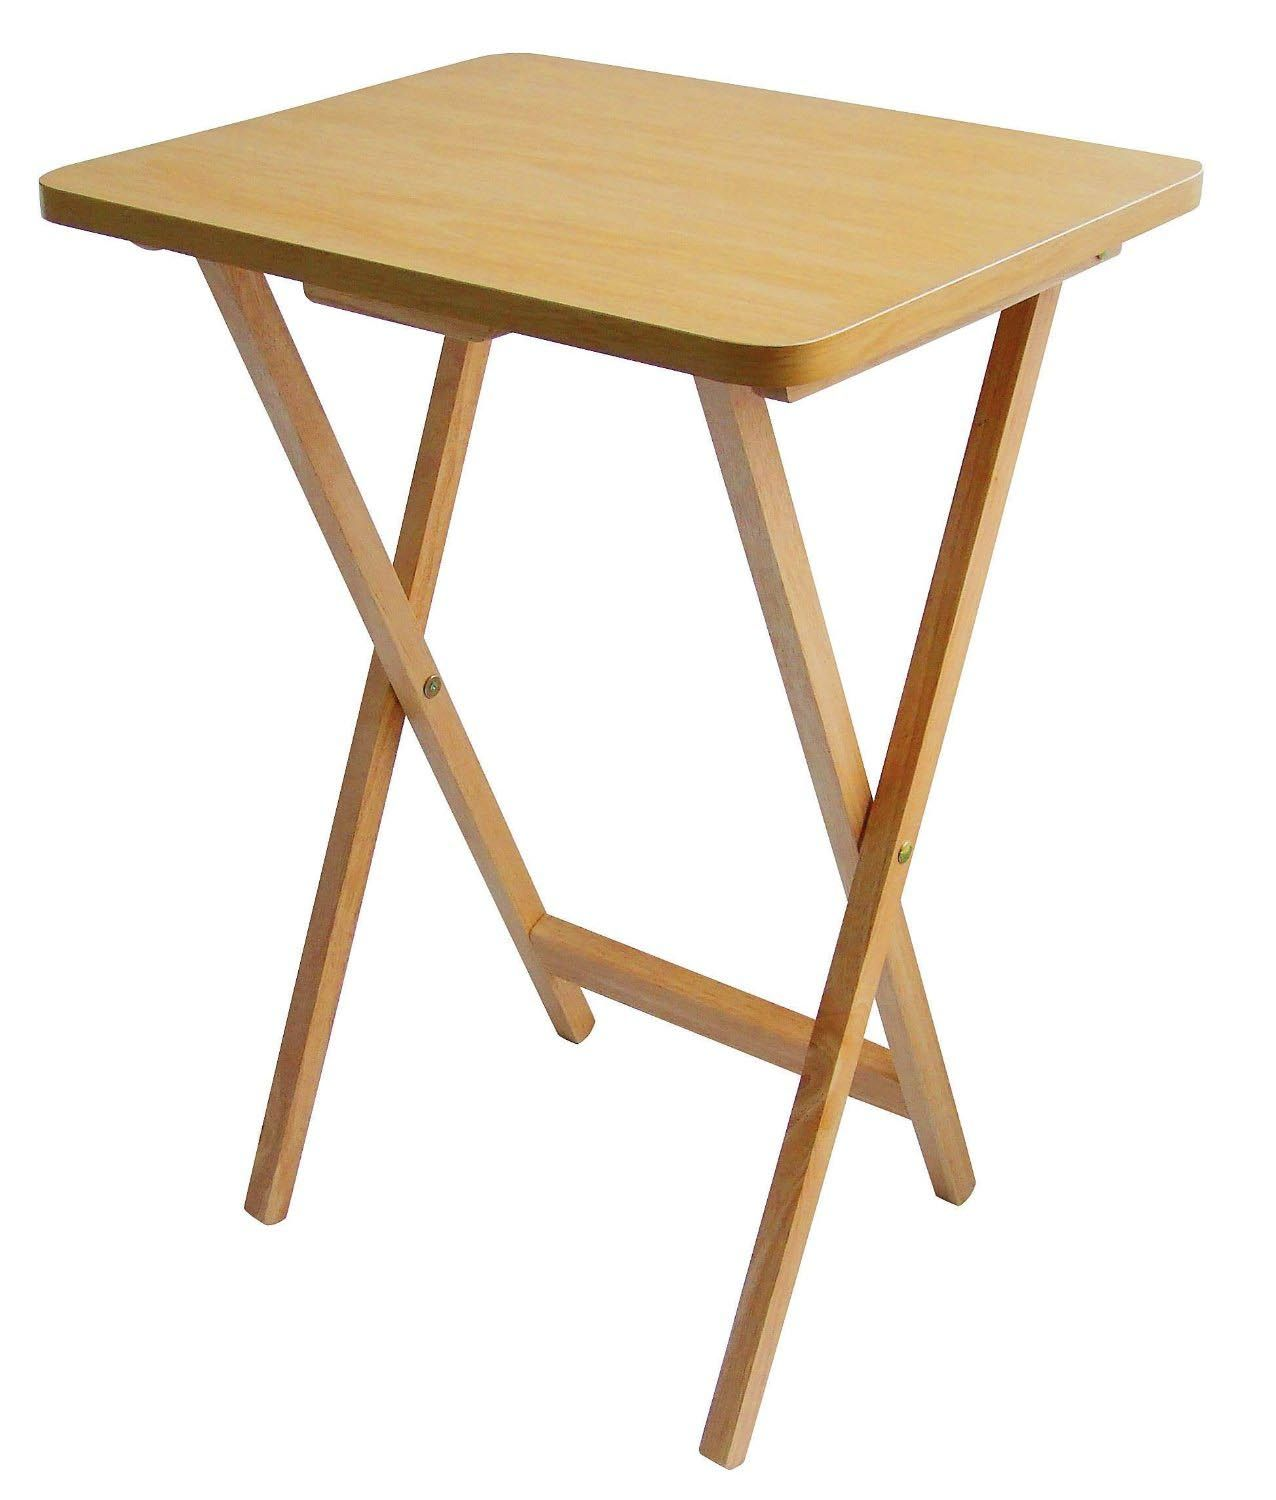 Small Folding Wooden Side Table   Teak Wood Tables Complement Houses Of  Several Sizes And Function In A Variety Of Ways. The The Highest Quality Of  Teak Ta